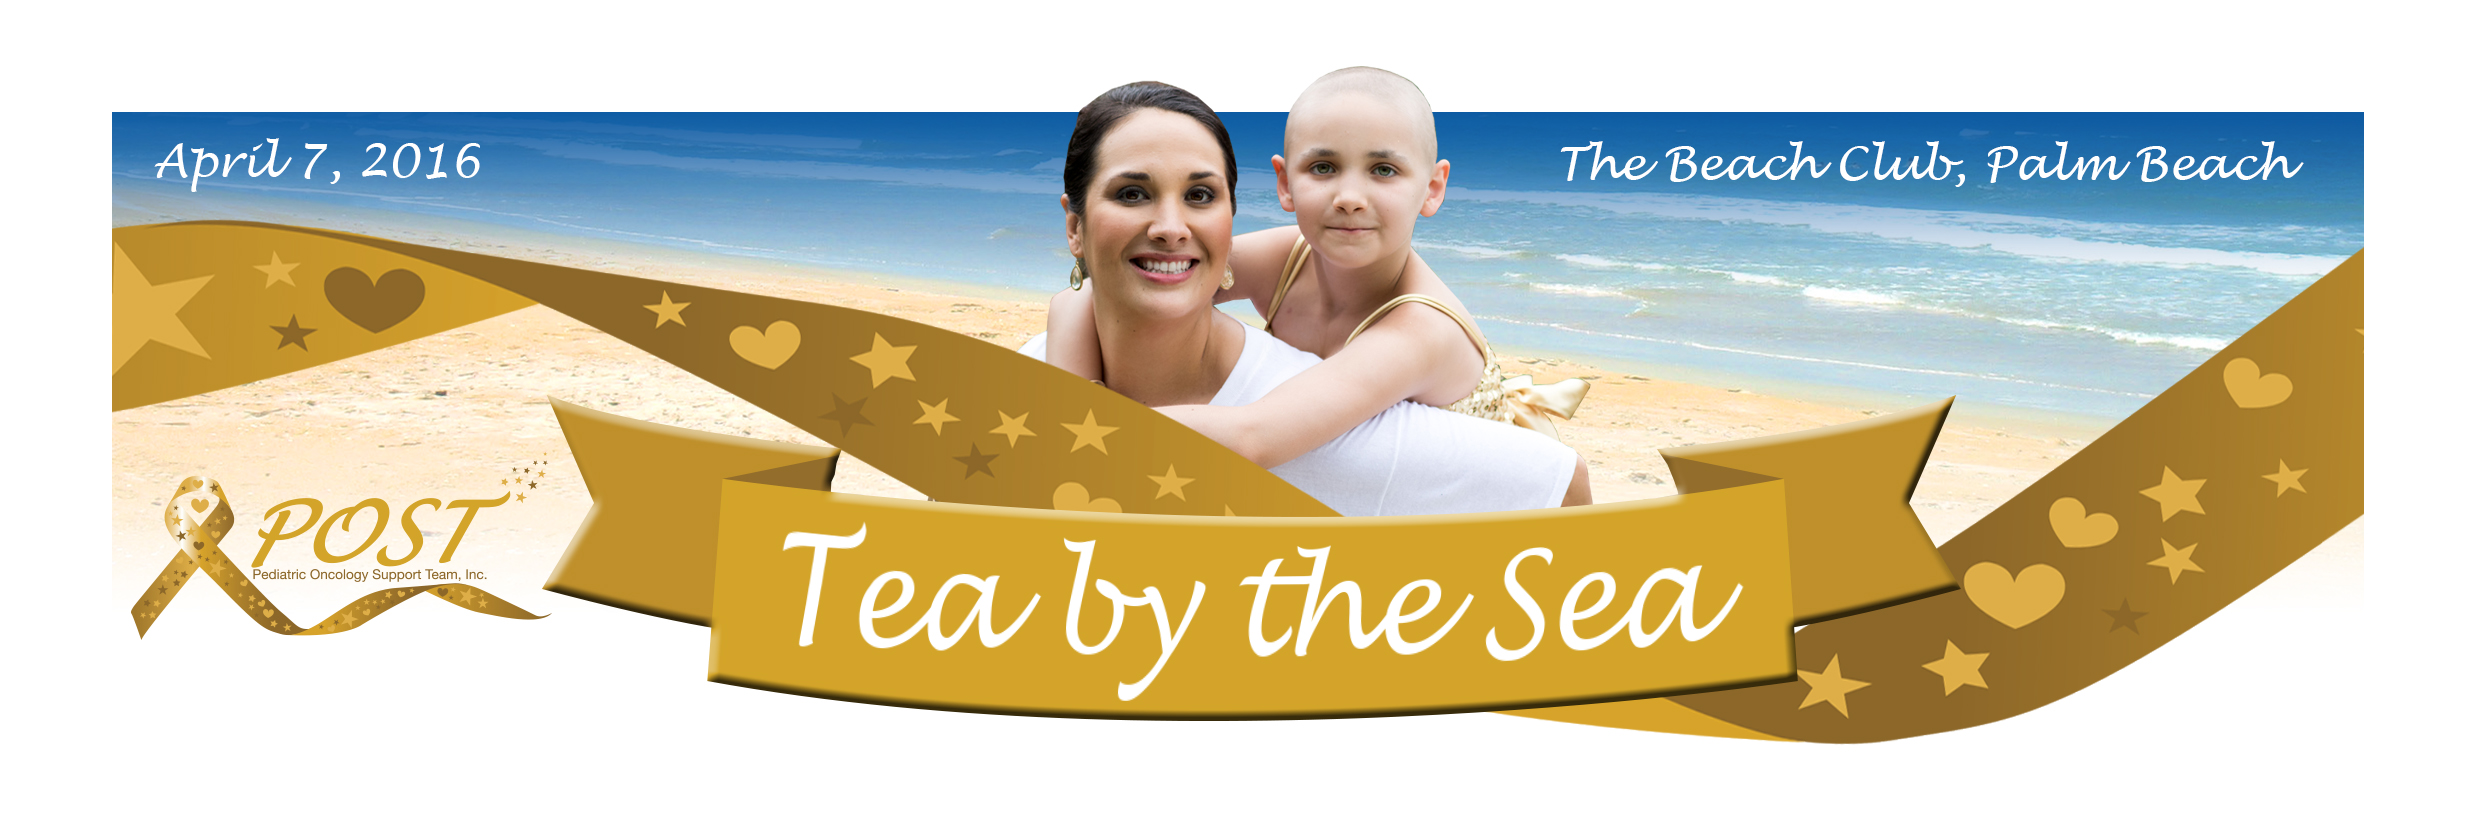 Tea by the Sea Seperate Graphic